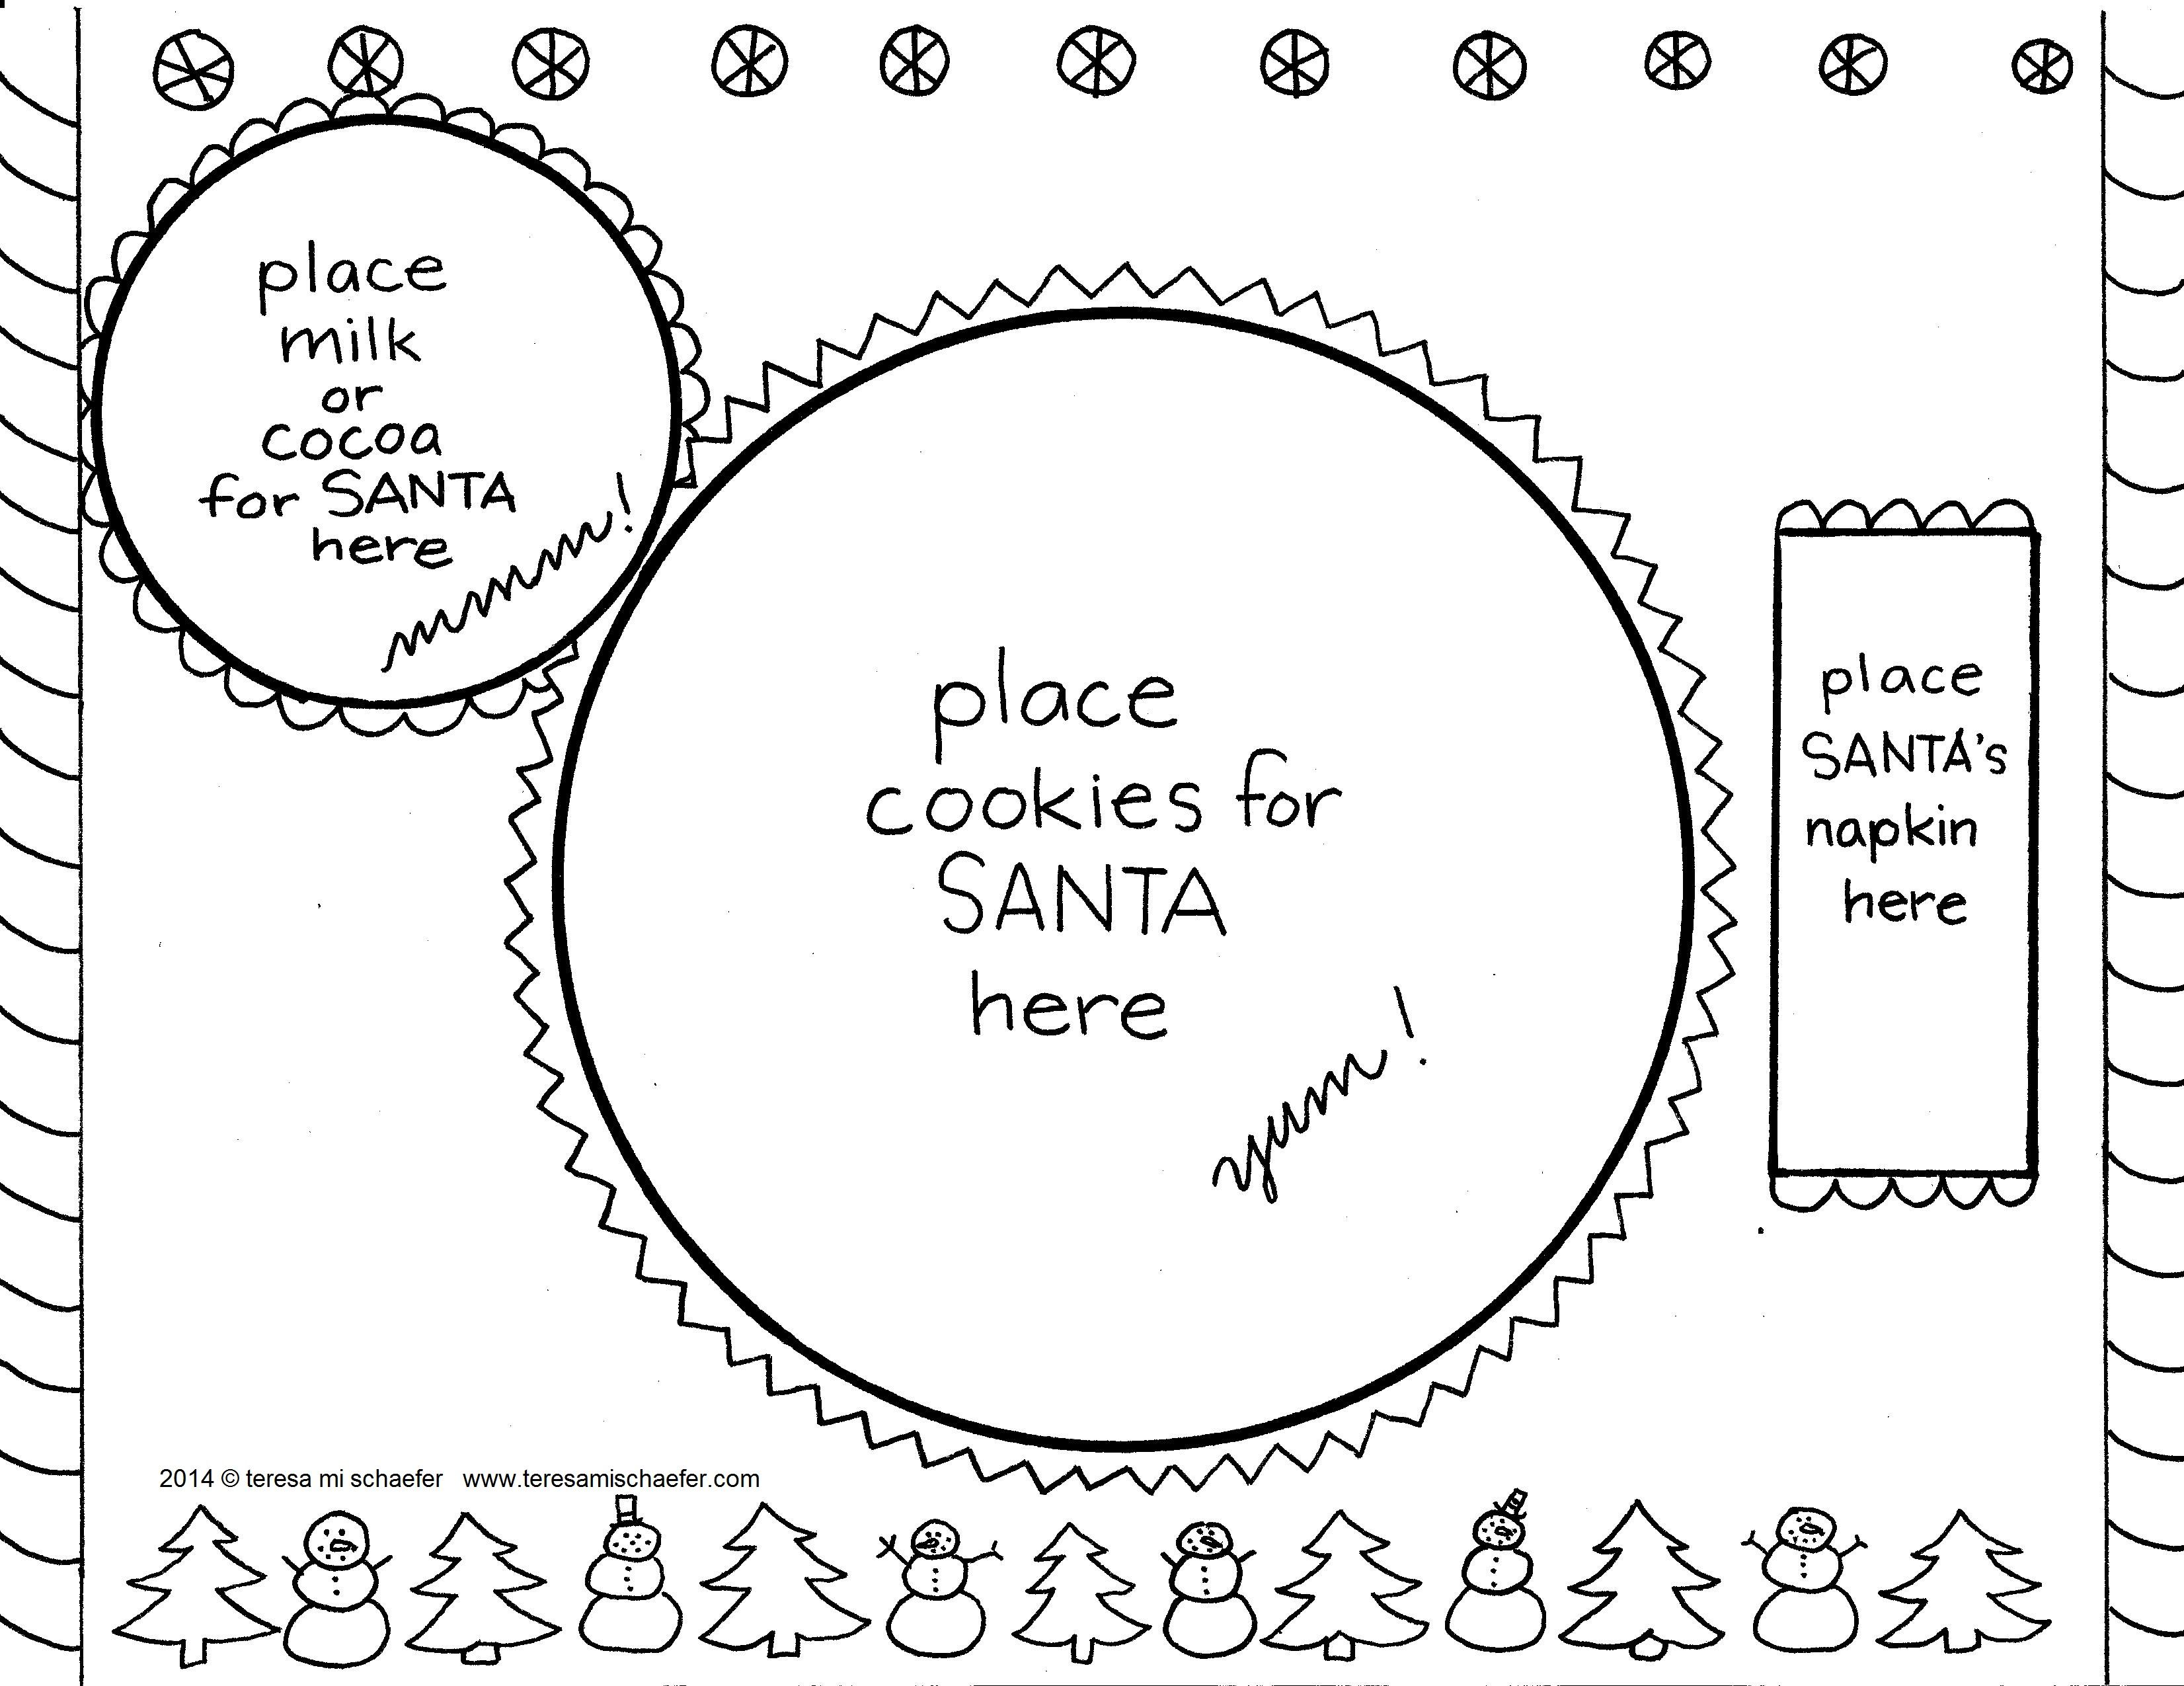 Teresa Mi Schaefer On The Way To The Library Home Page Advent Coloring Christmas Colors Christmas Countdown